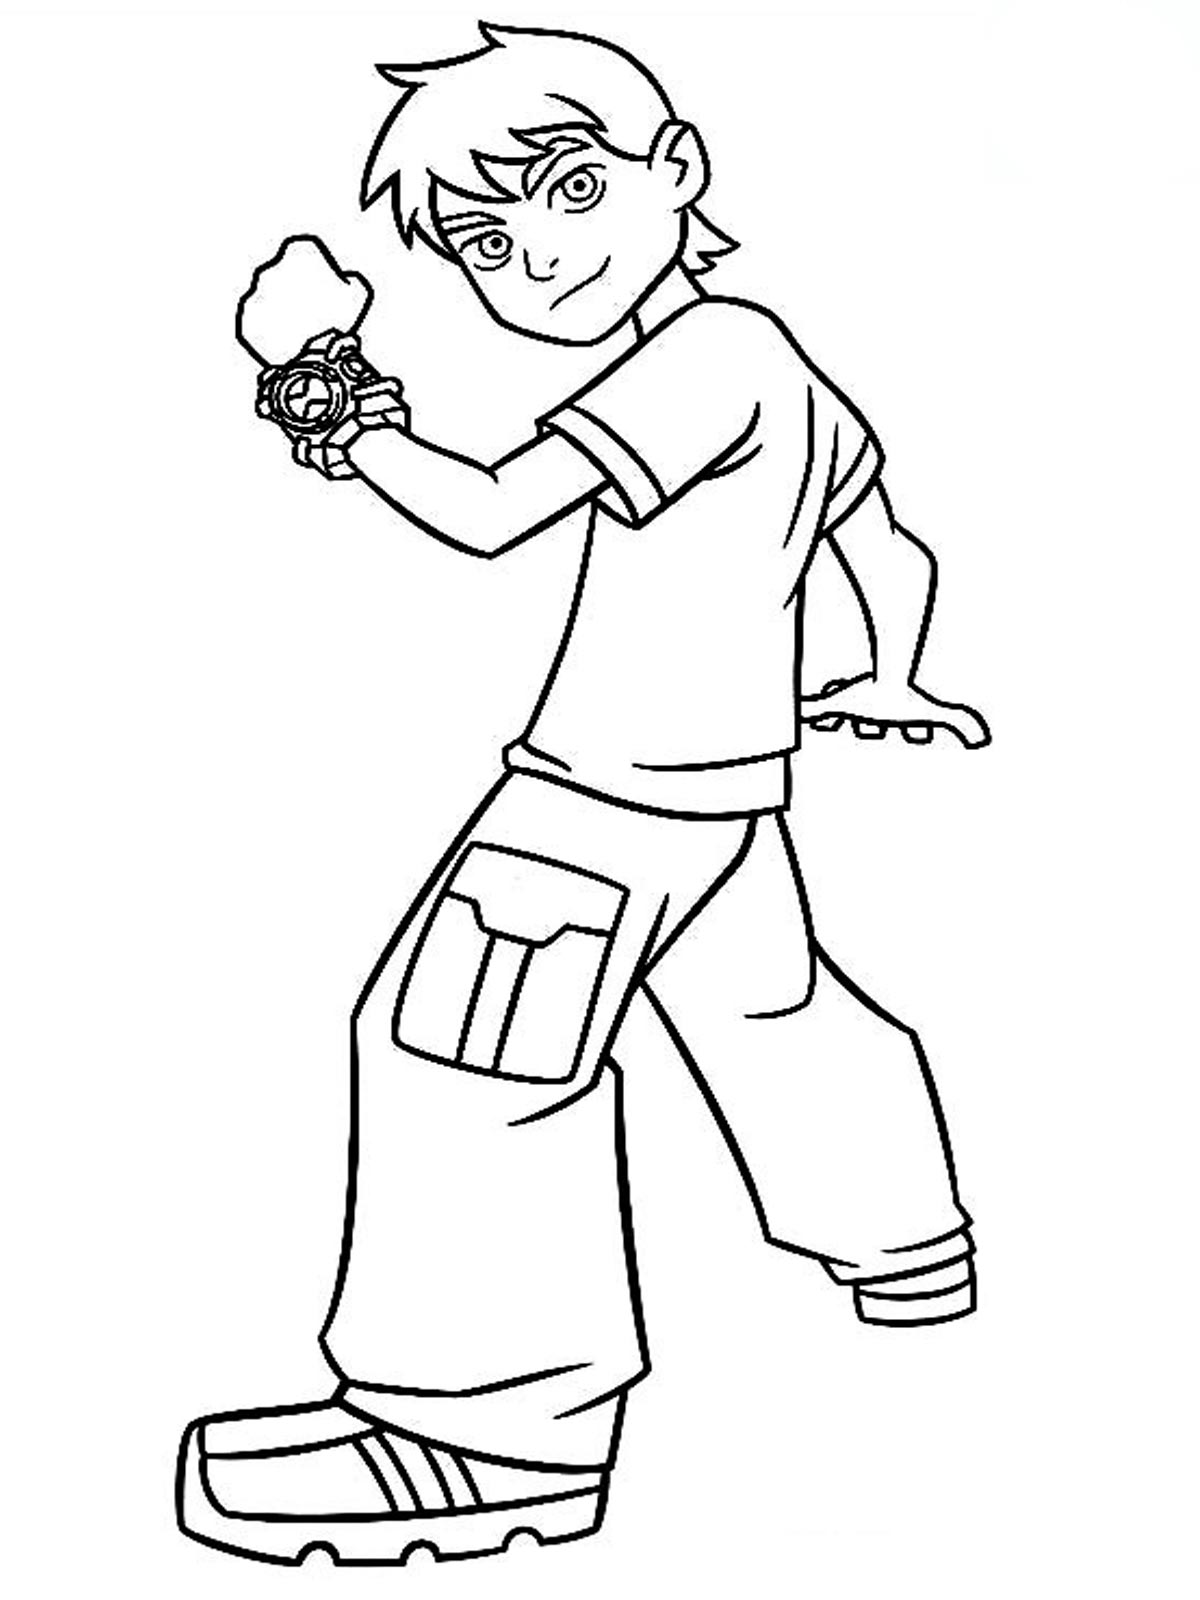 Ben 10 Drawing Step By Step at GetDrawings com   Free for